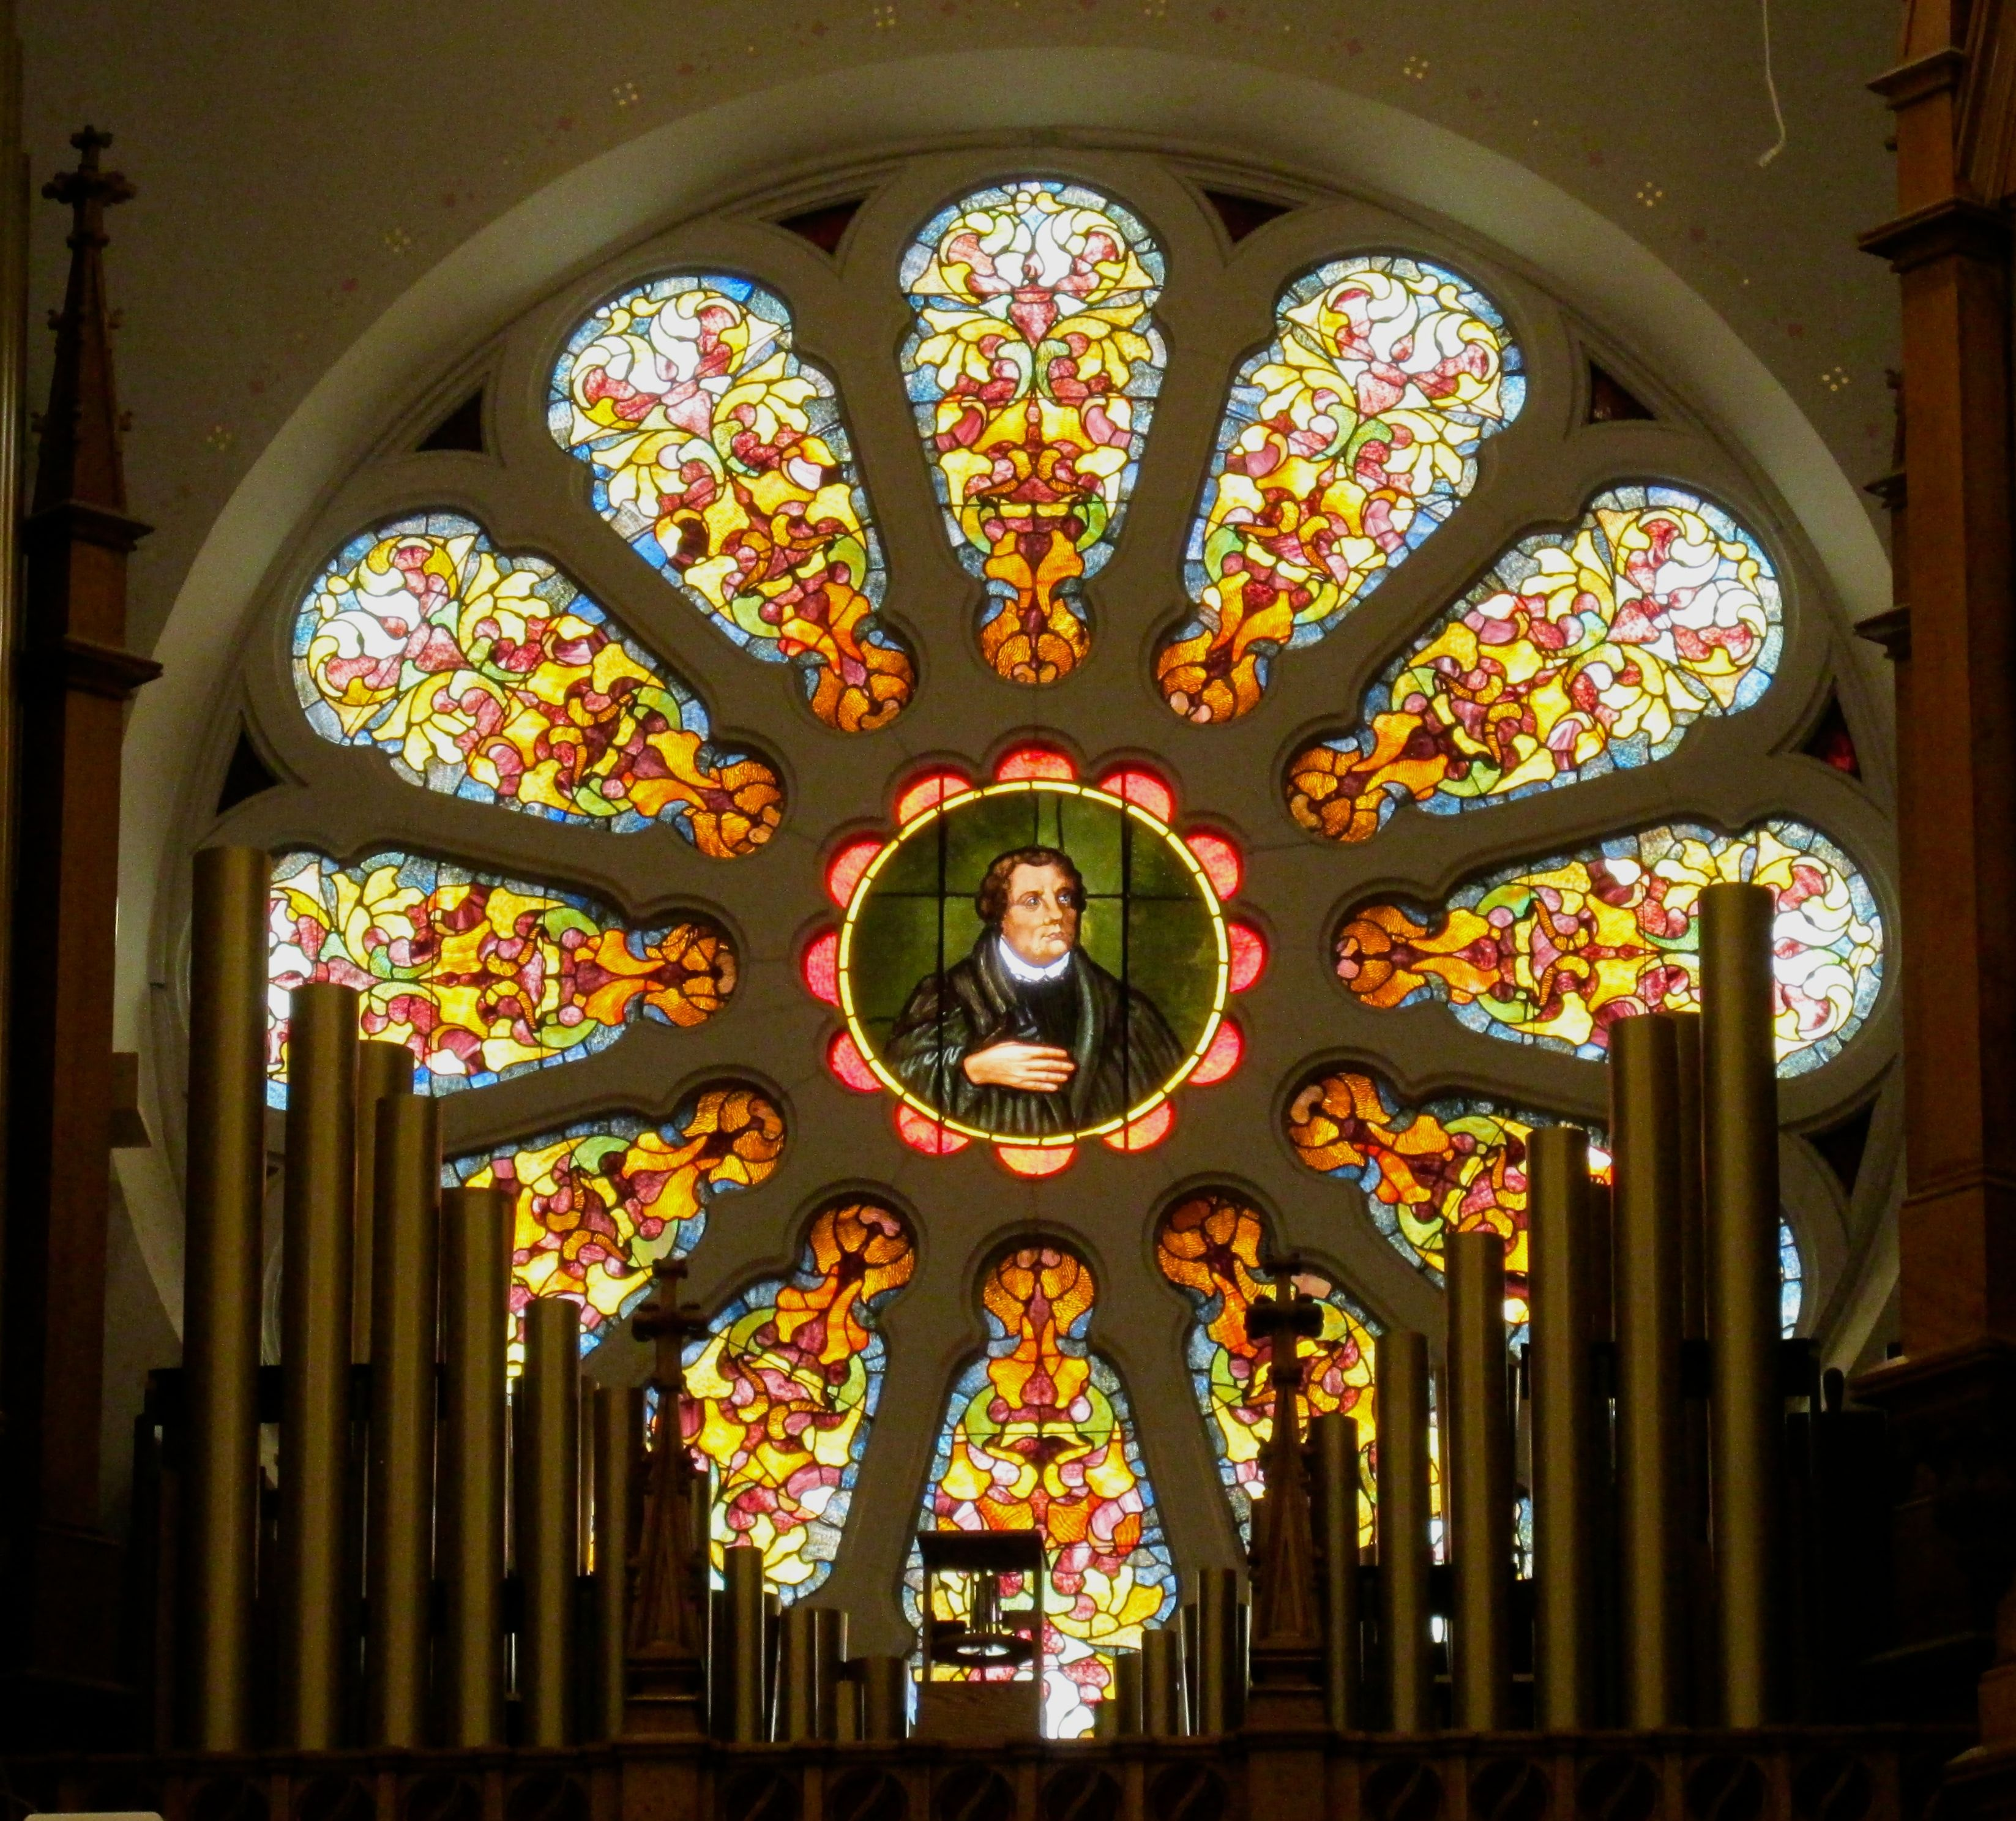 Rose window in the organ loft with Martin Luther's portrait